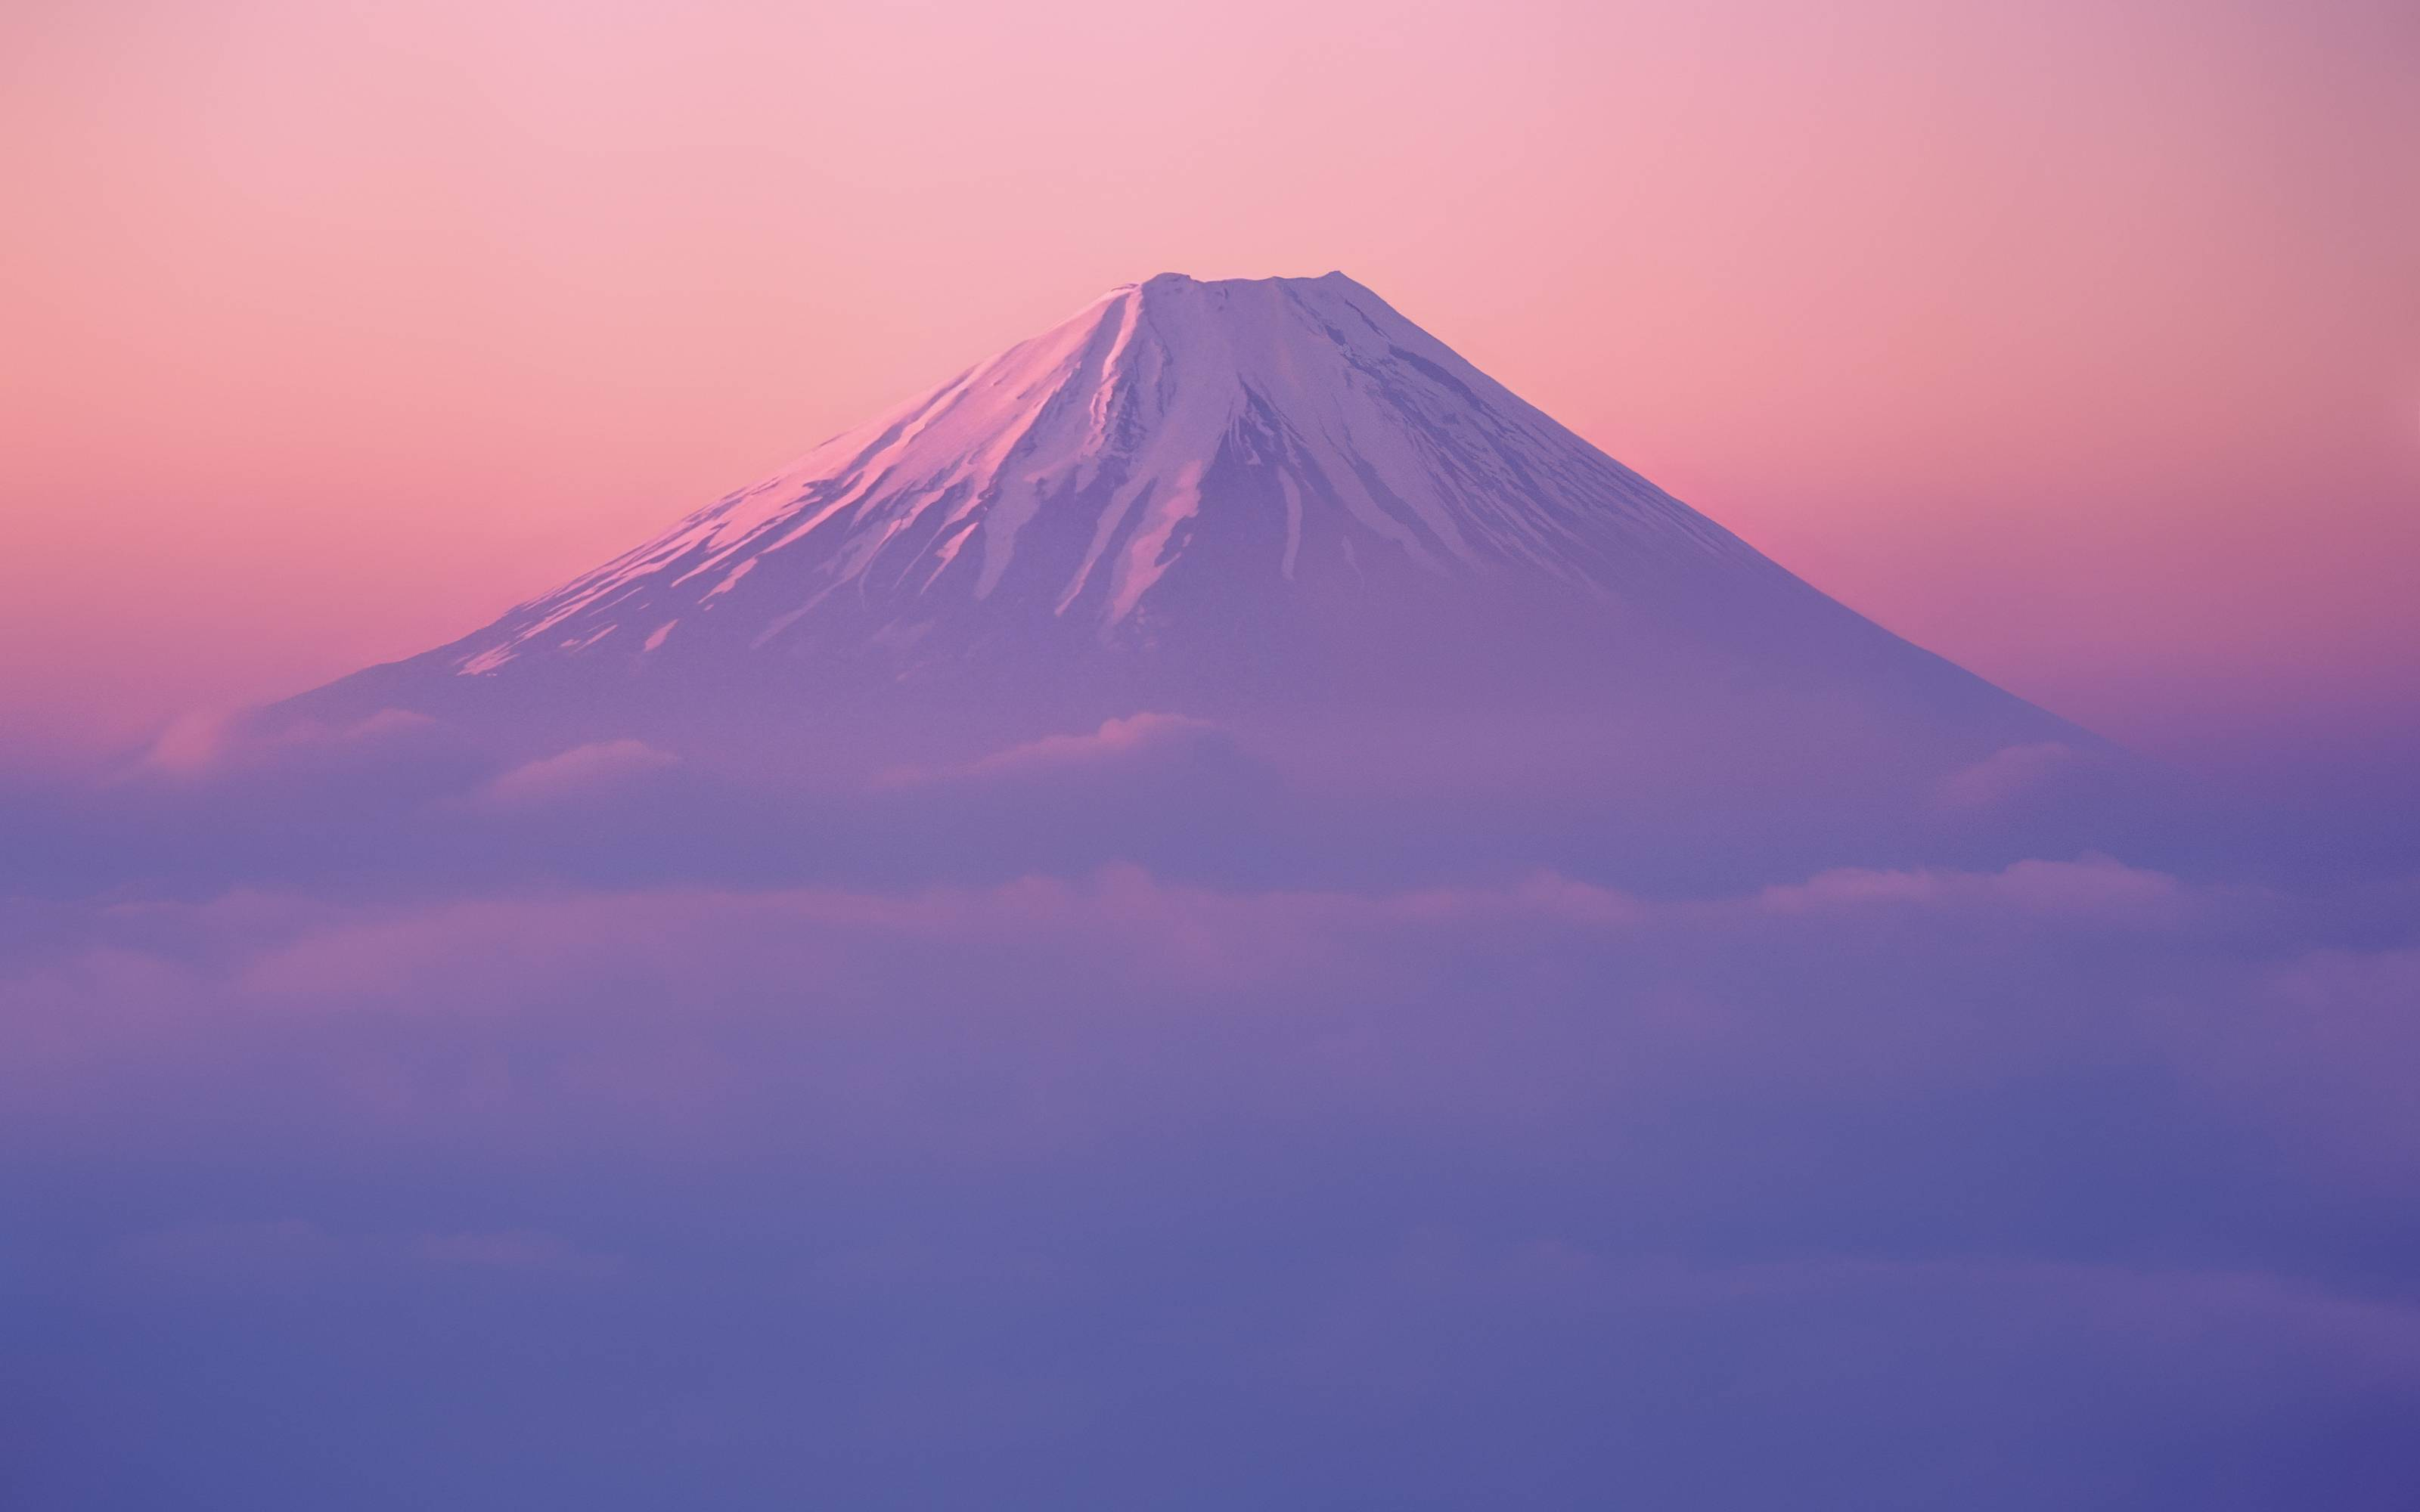 New Mt Fuji Wallpaper in Mac OS X Lion Developer Preview 2 OSXDaily 3200x2000